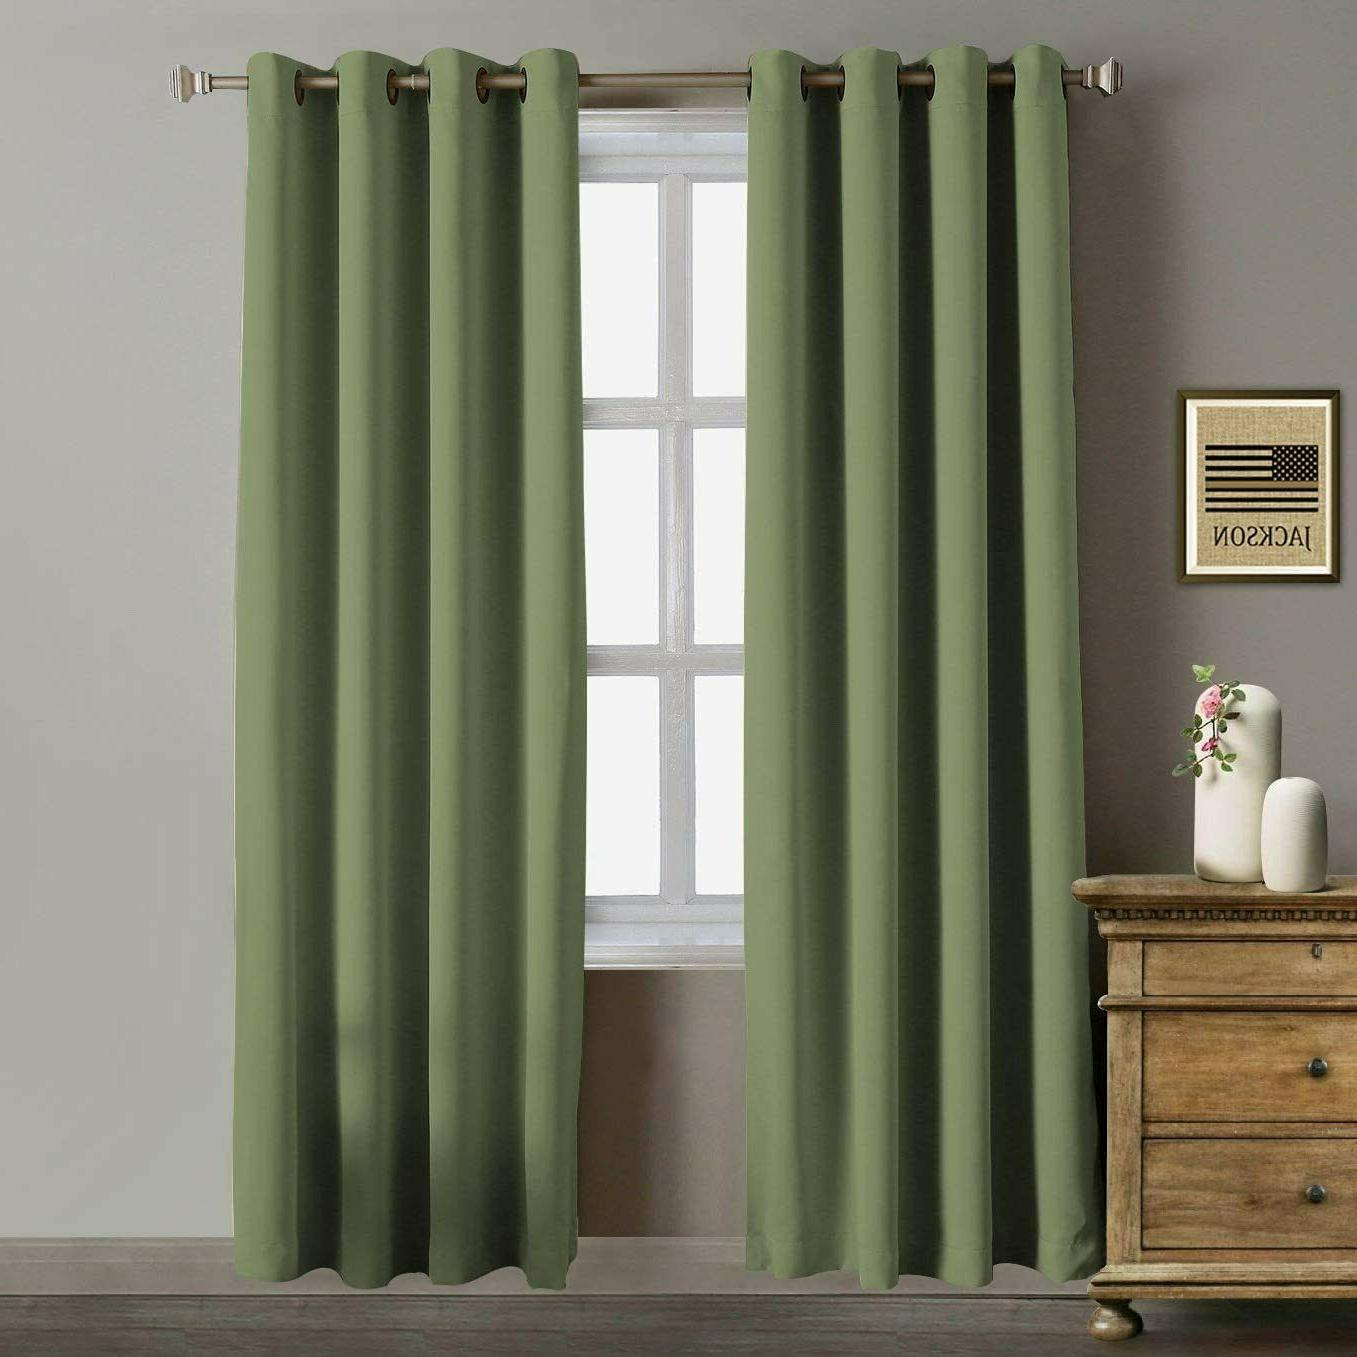 52 x 96 blackout curtains thermal insulated